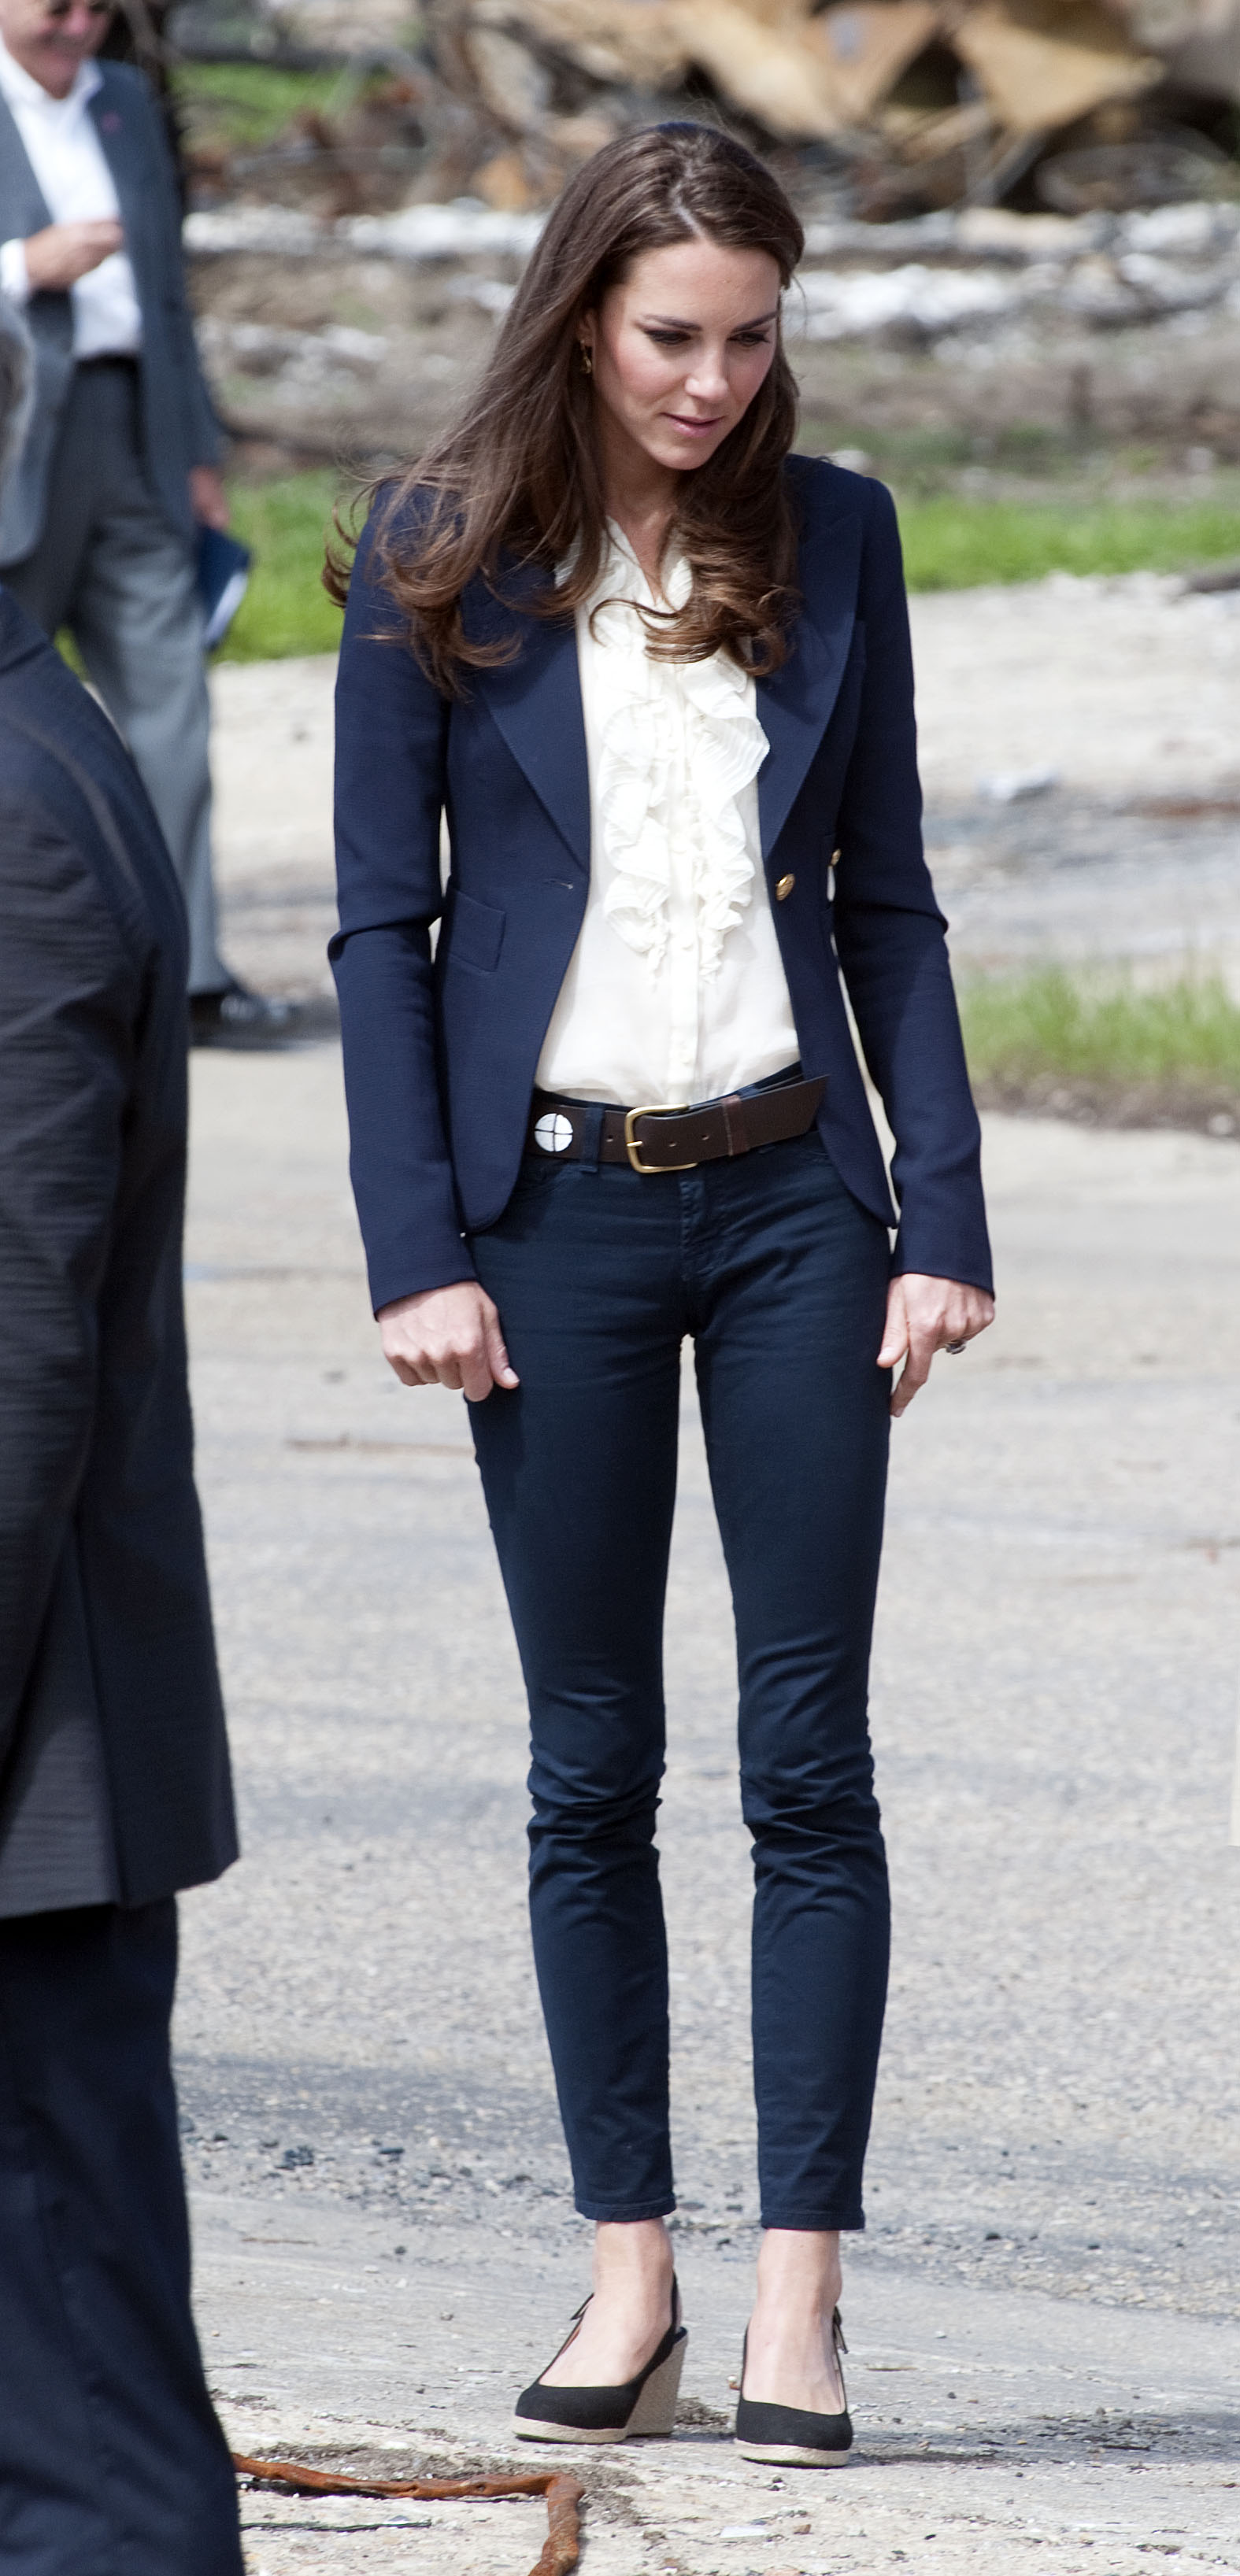 Kate Middleton Visits Alberta In Jeans Prince William And Kate Middleton Continue Their